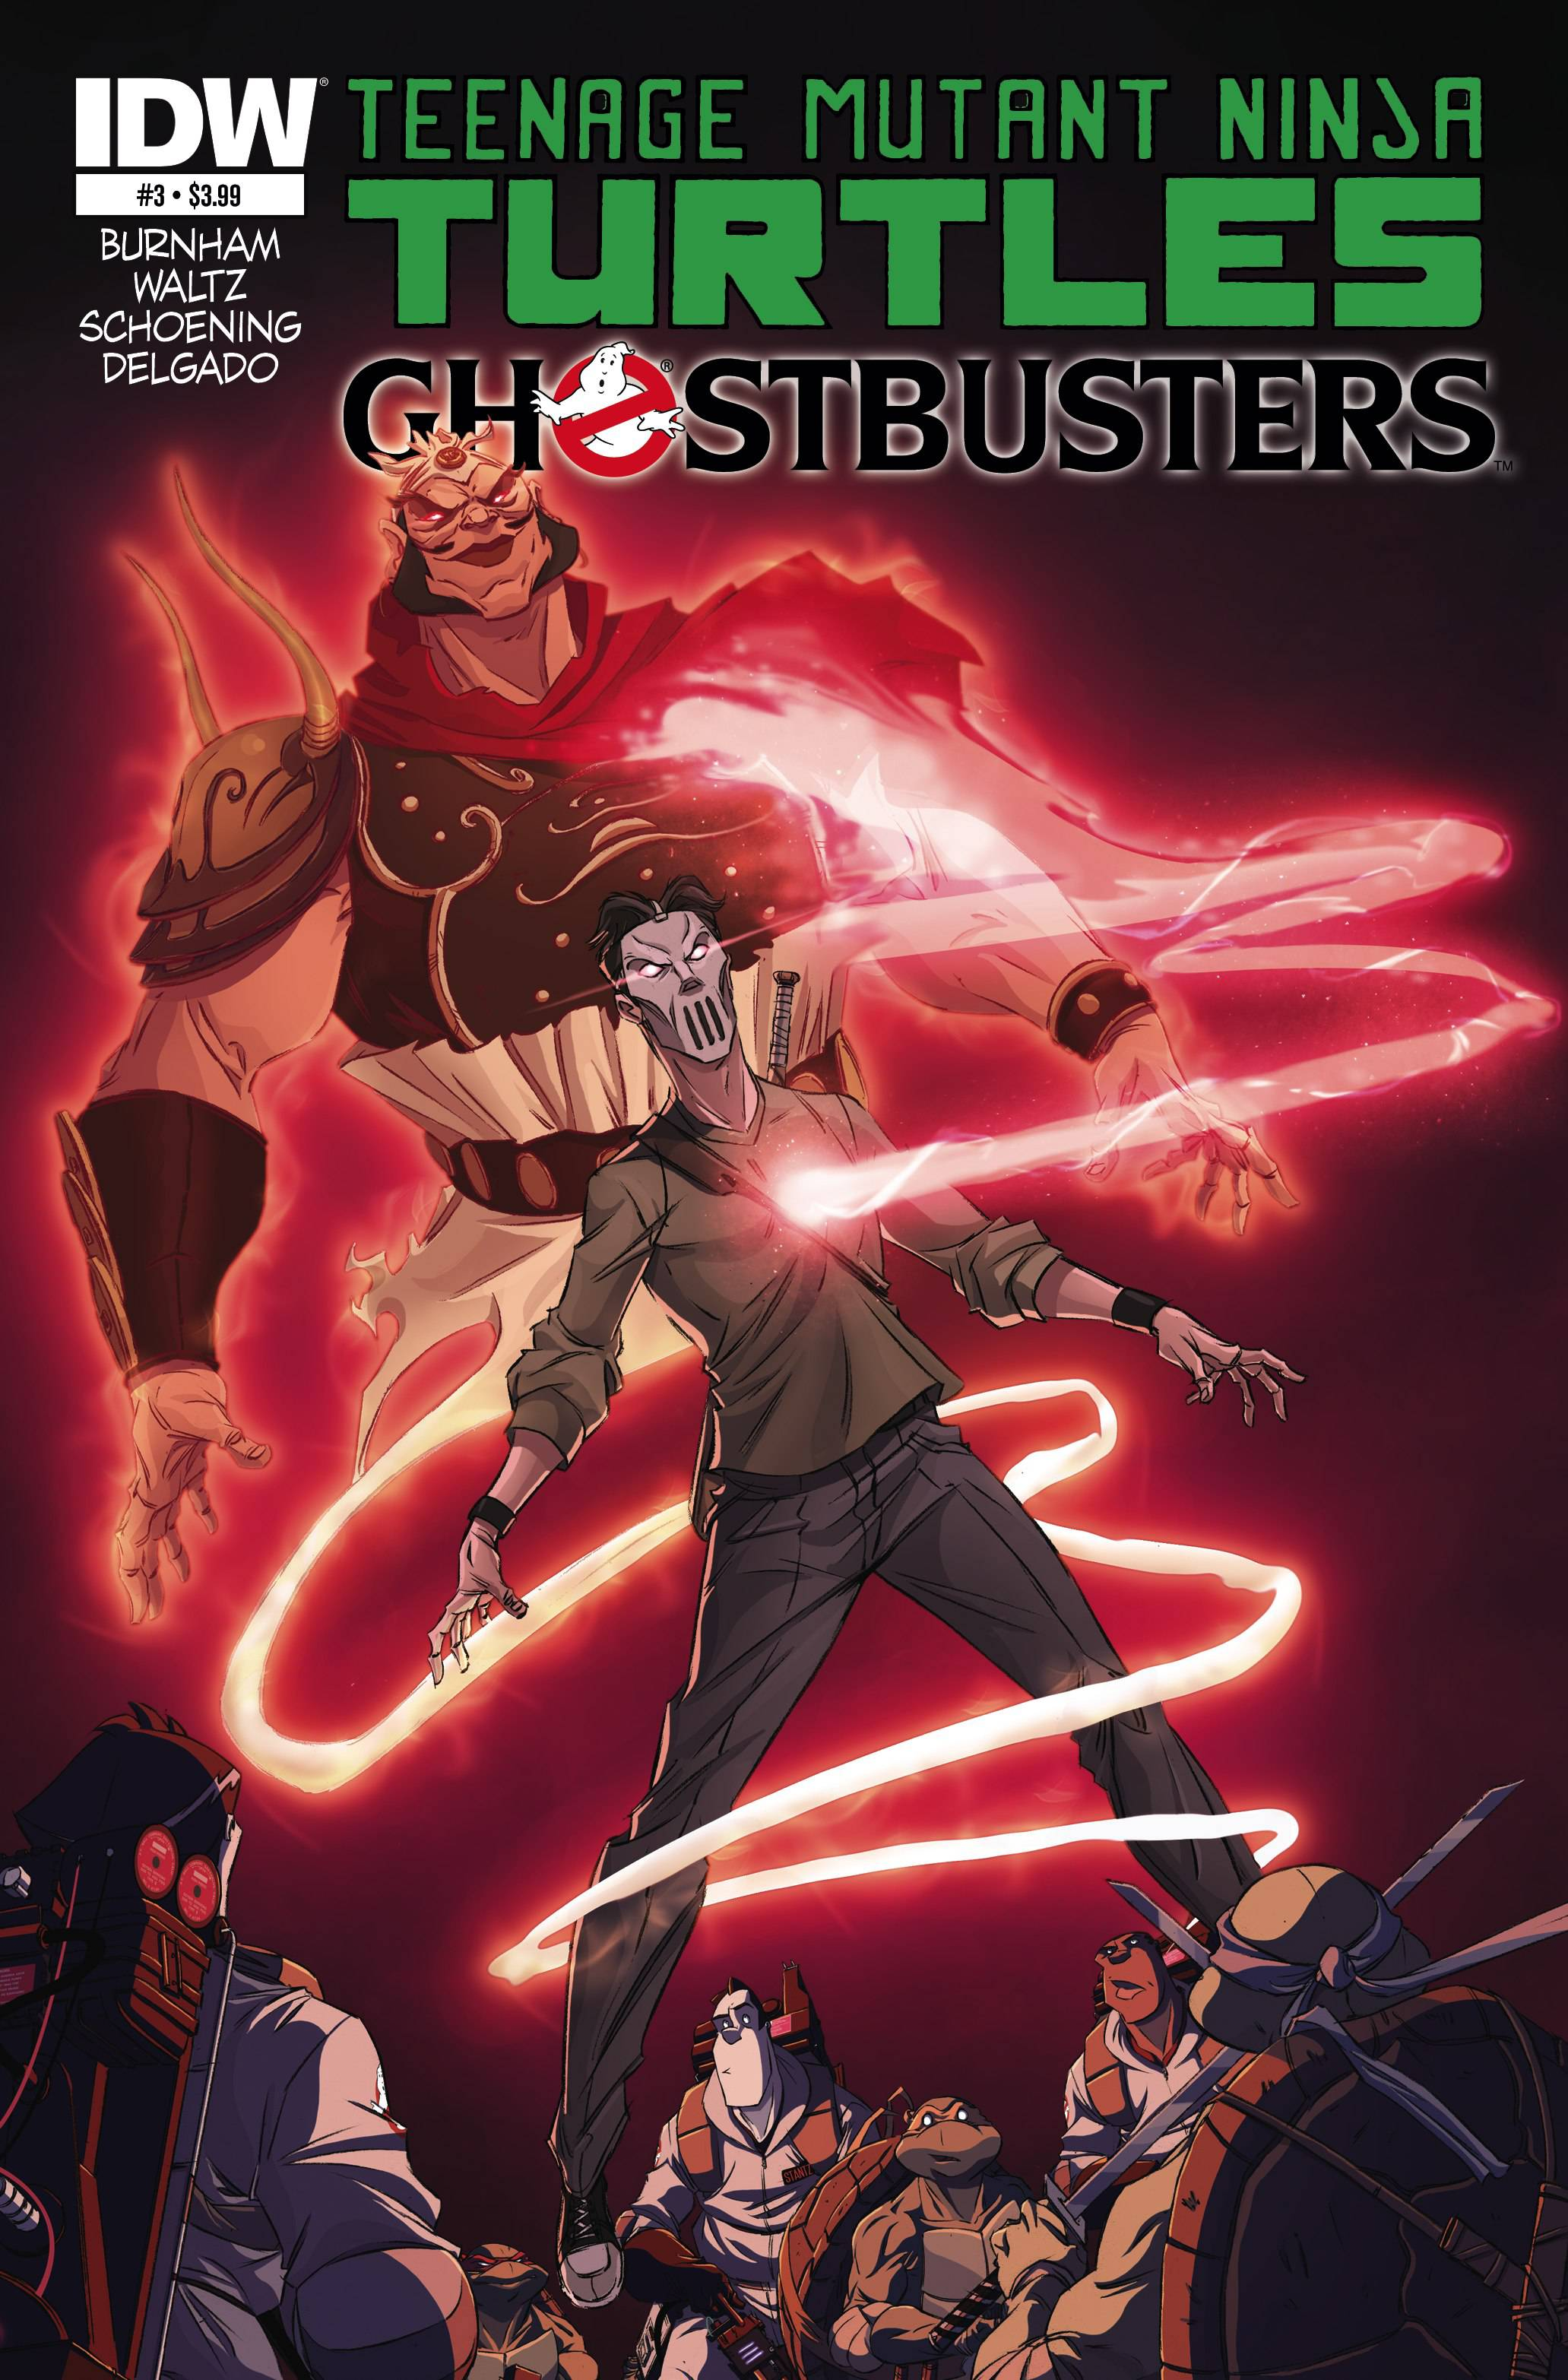 Questions That Make You Think >> TMNT Ghostbusters Issue #3 - Comic Books - Shop ...